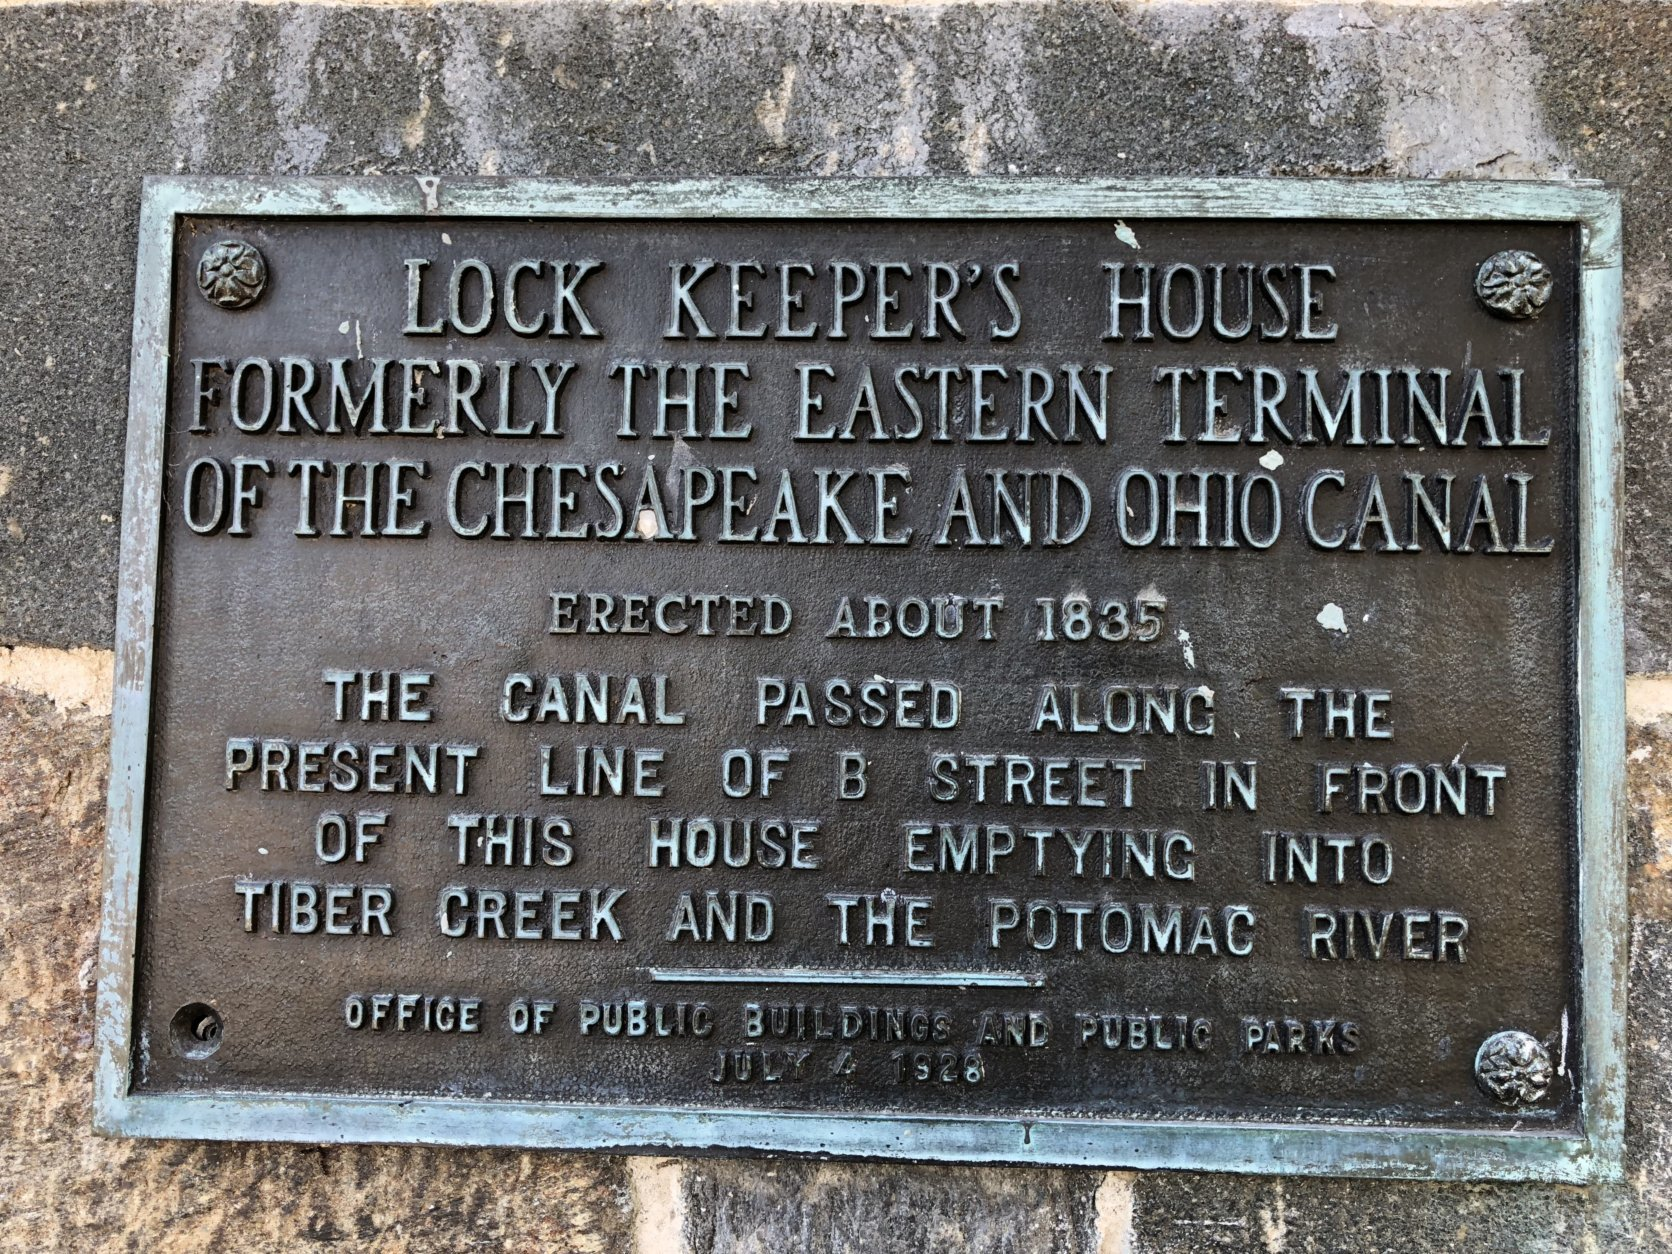 Built in 1837, the Lockkeeper's House is the oldest structure on the National Mall. (WTOP/Kristi King)